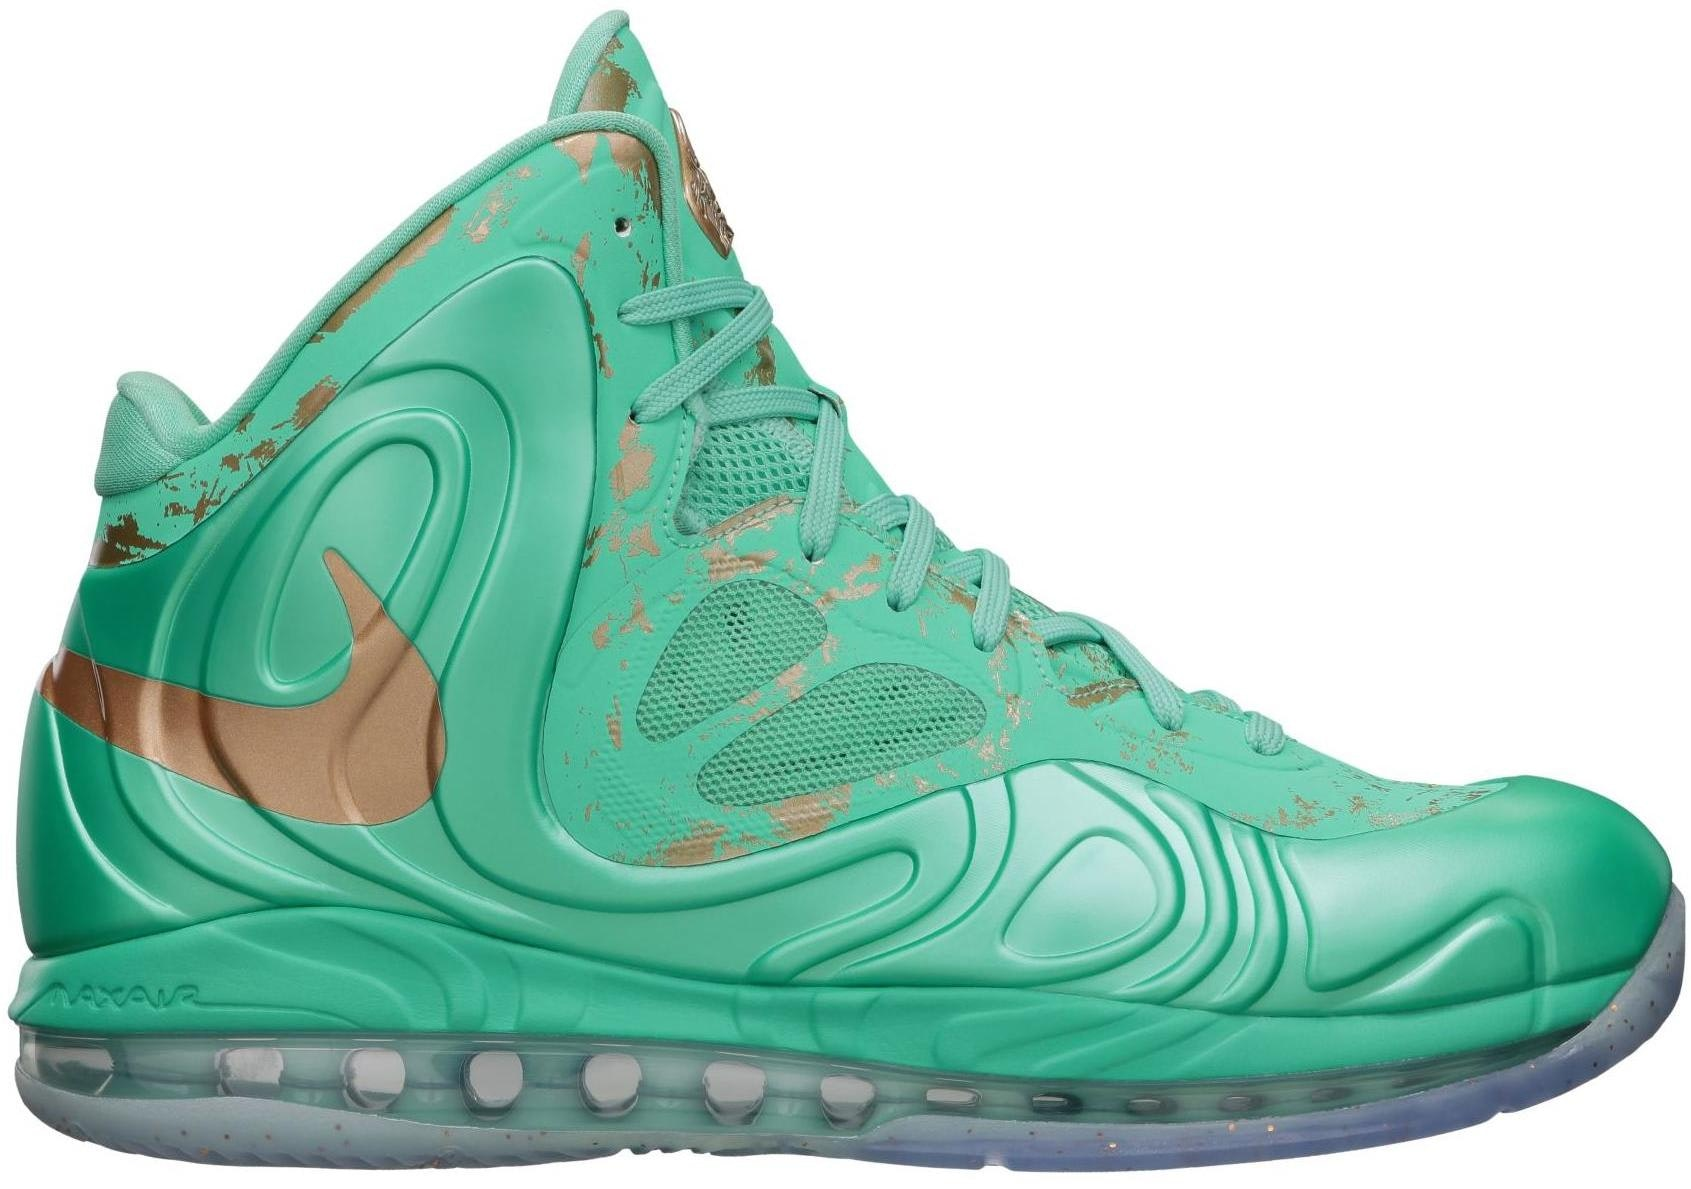 Nike Hyperposite Statue of Liberty